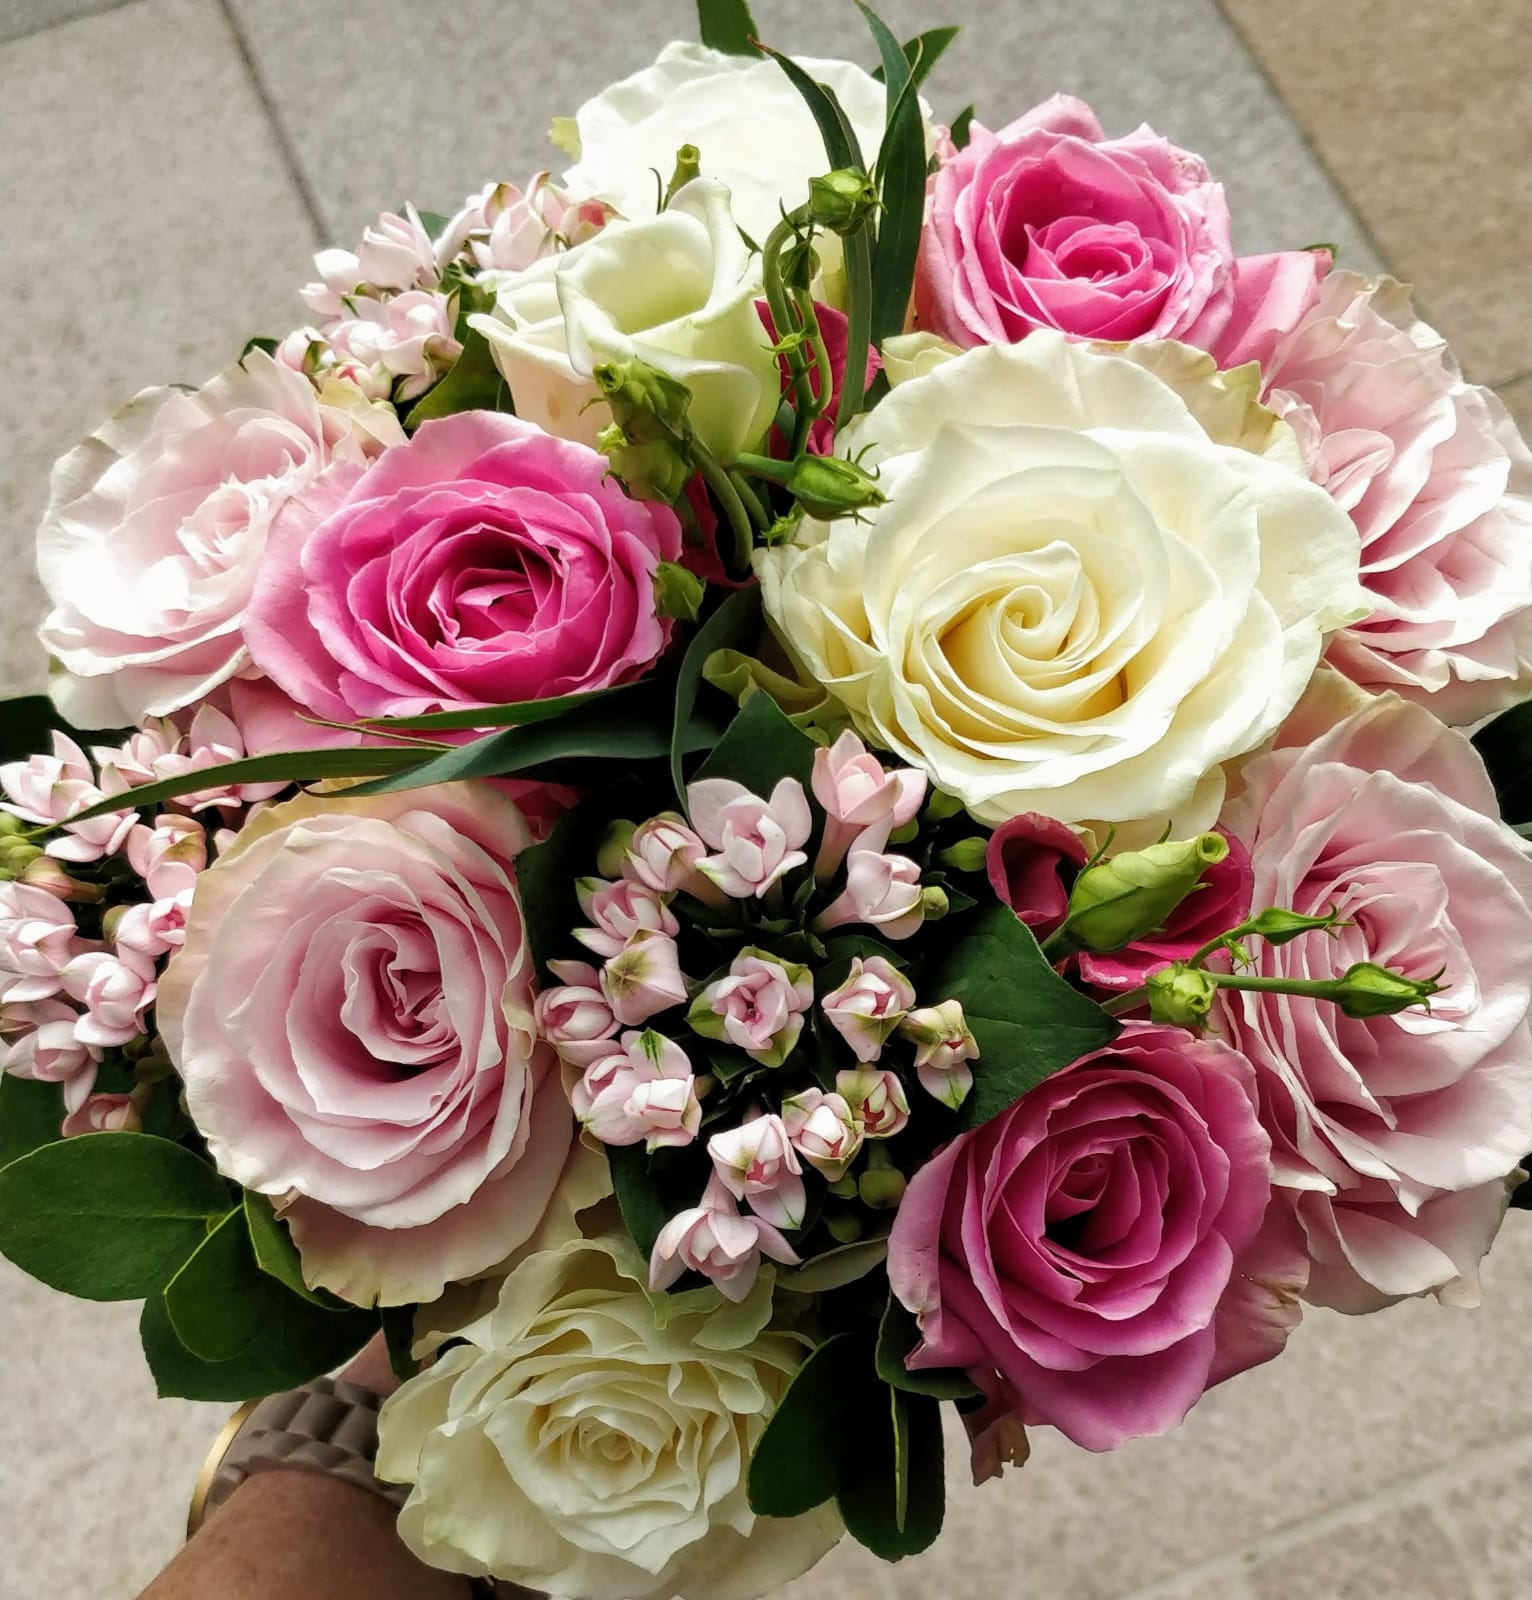 pink_and_white _roses.jpg